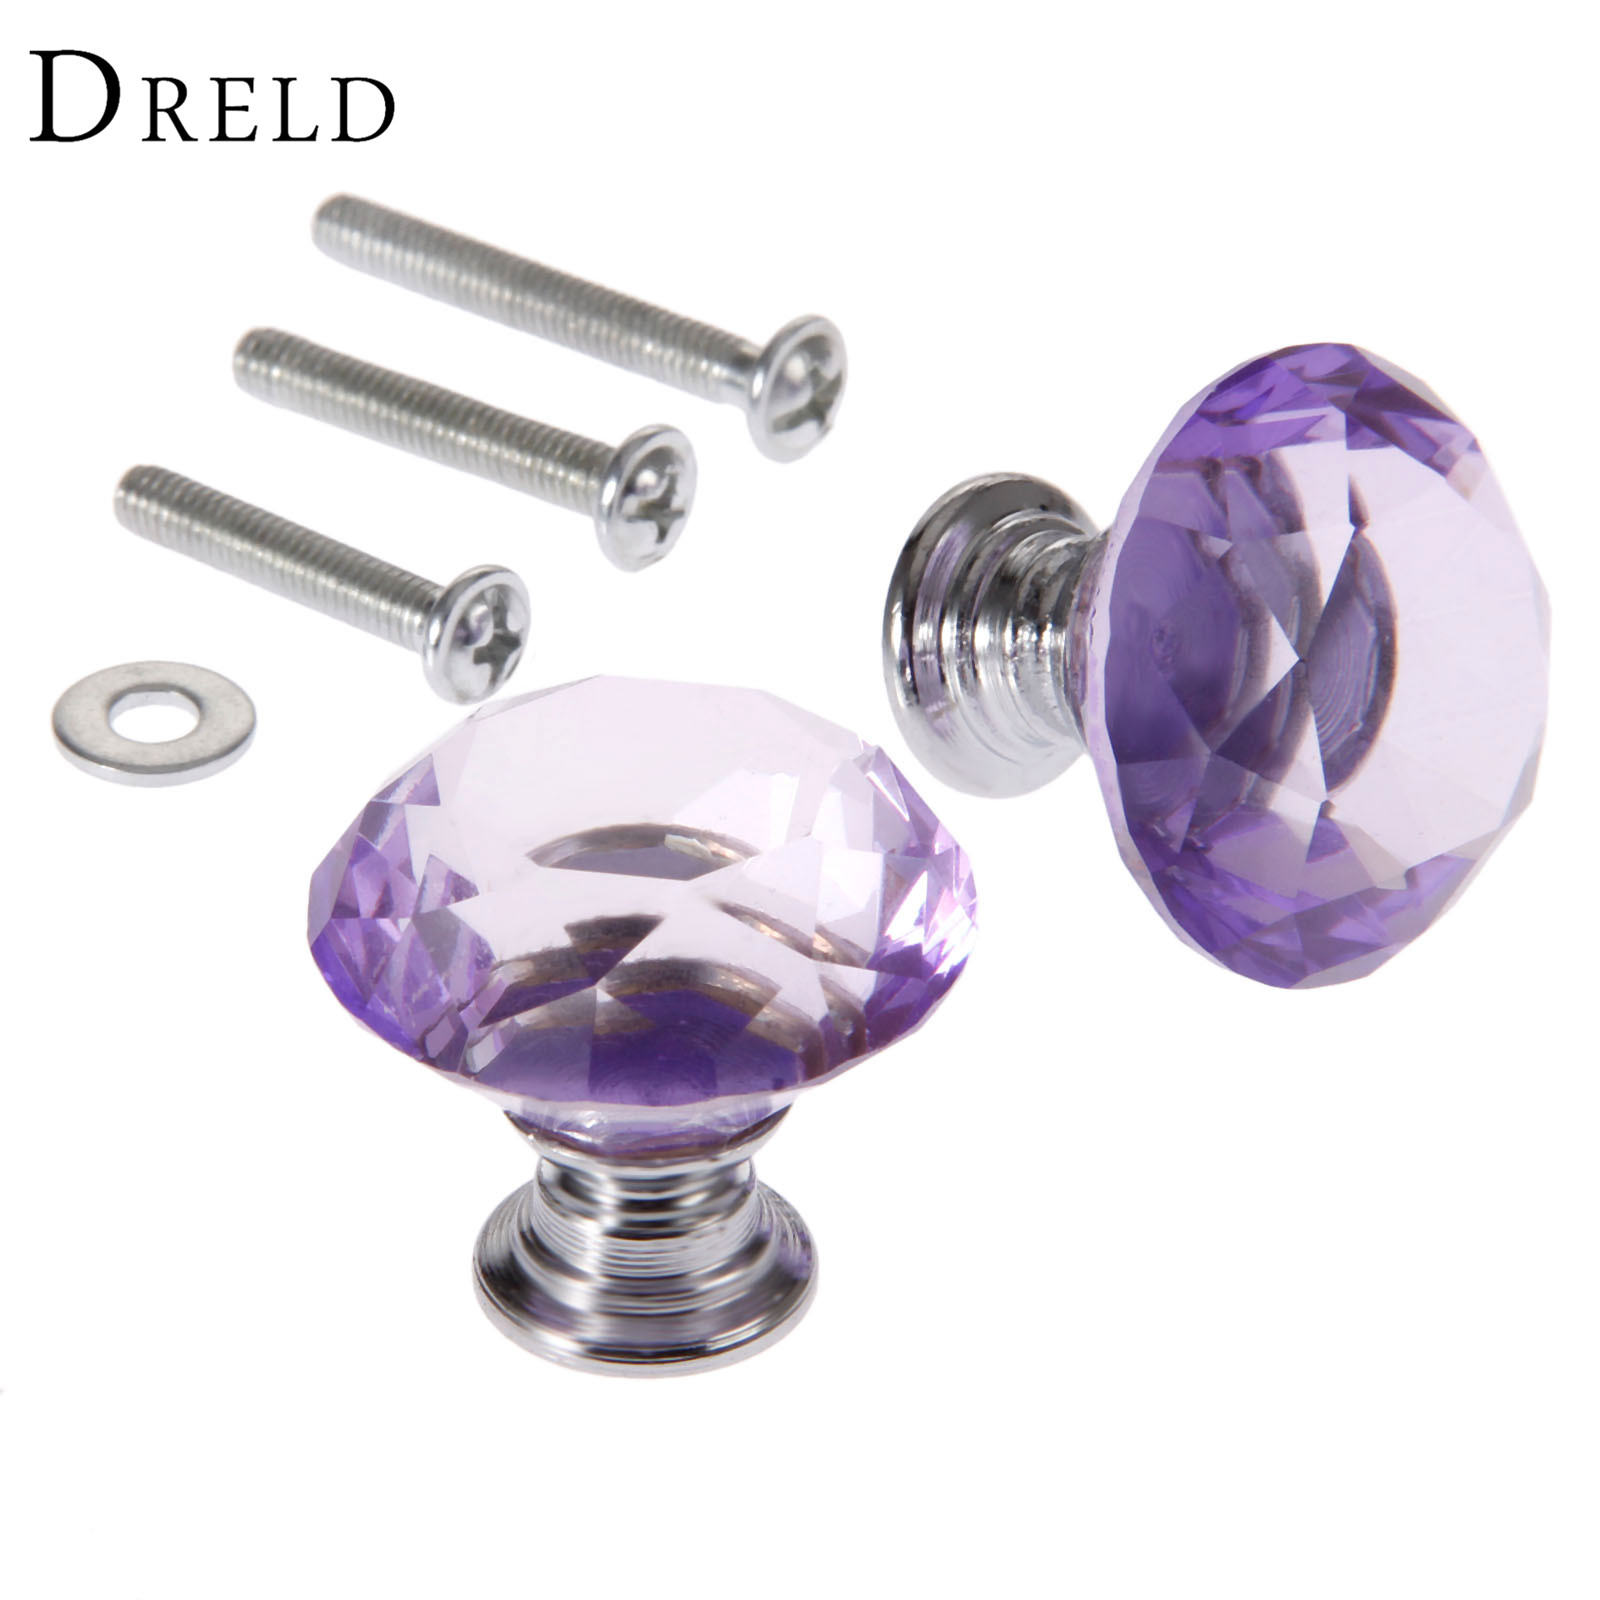 DRELD 2Pcs 30mm Diamond Crystal Drawer Pulls Glass Door Cabinet Wardrobe Pull Knobs Purple Furniture Handles + 6Pcs Screws 10 pcs 30mm diamond shape crystal glass drawer cabinet knobs and pull handles kitchen door wardrobe hardware accessories